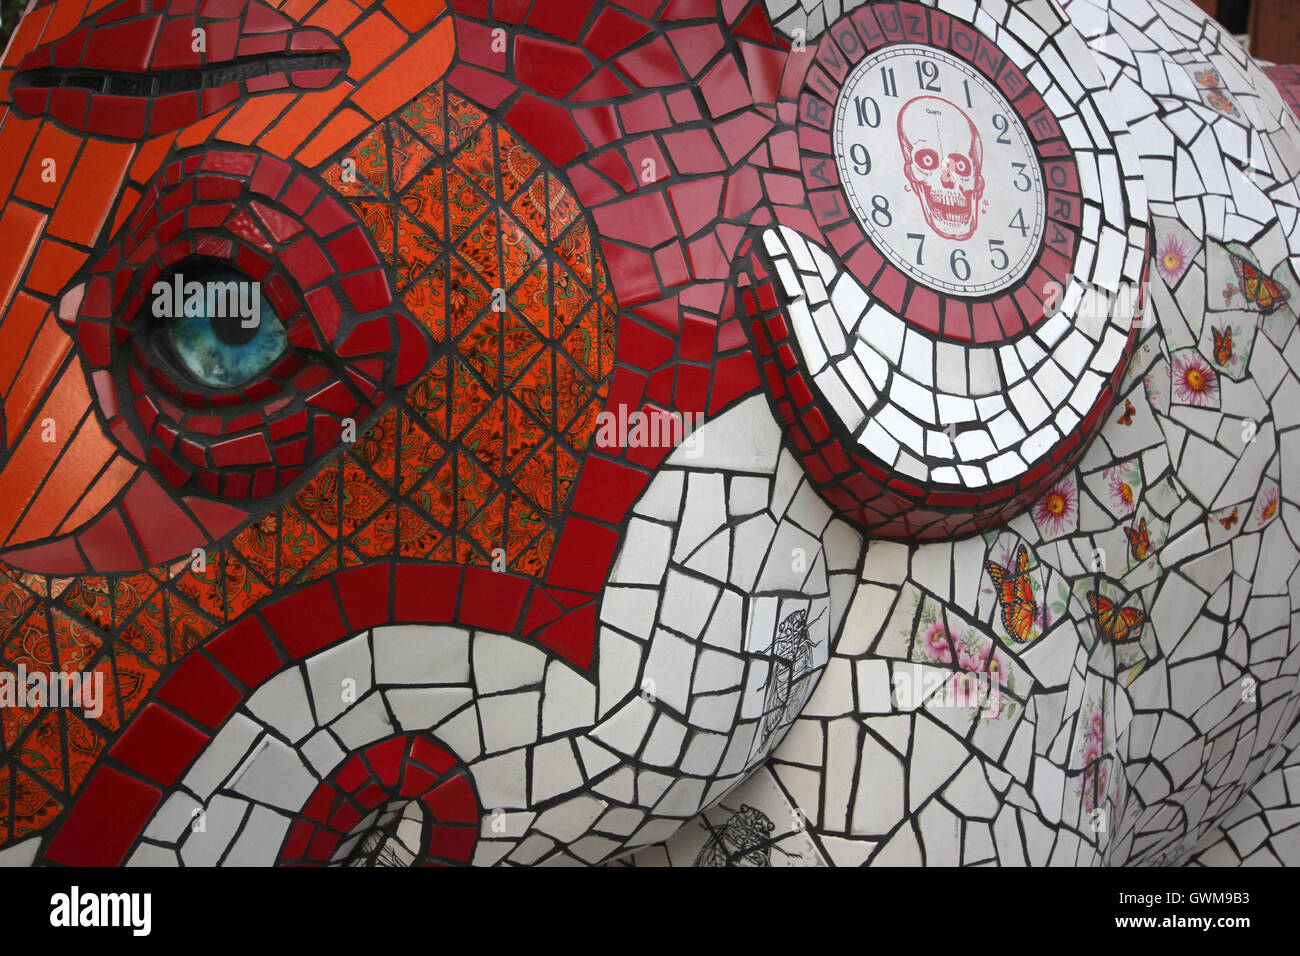 mosaic elephant sculpture by artist, Milan, 80 special designed elephants sold at a Christie's auction, 'Elephant - Stock Image